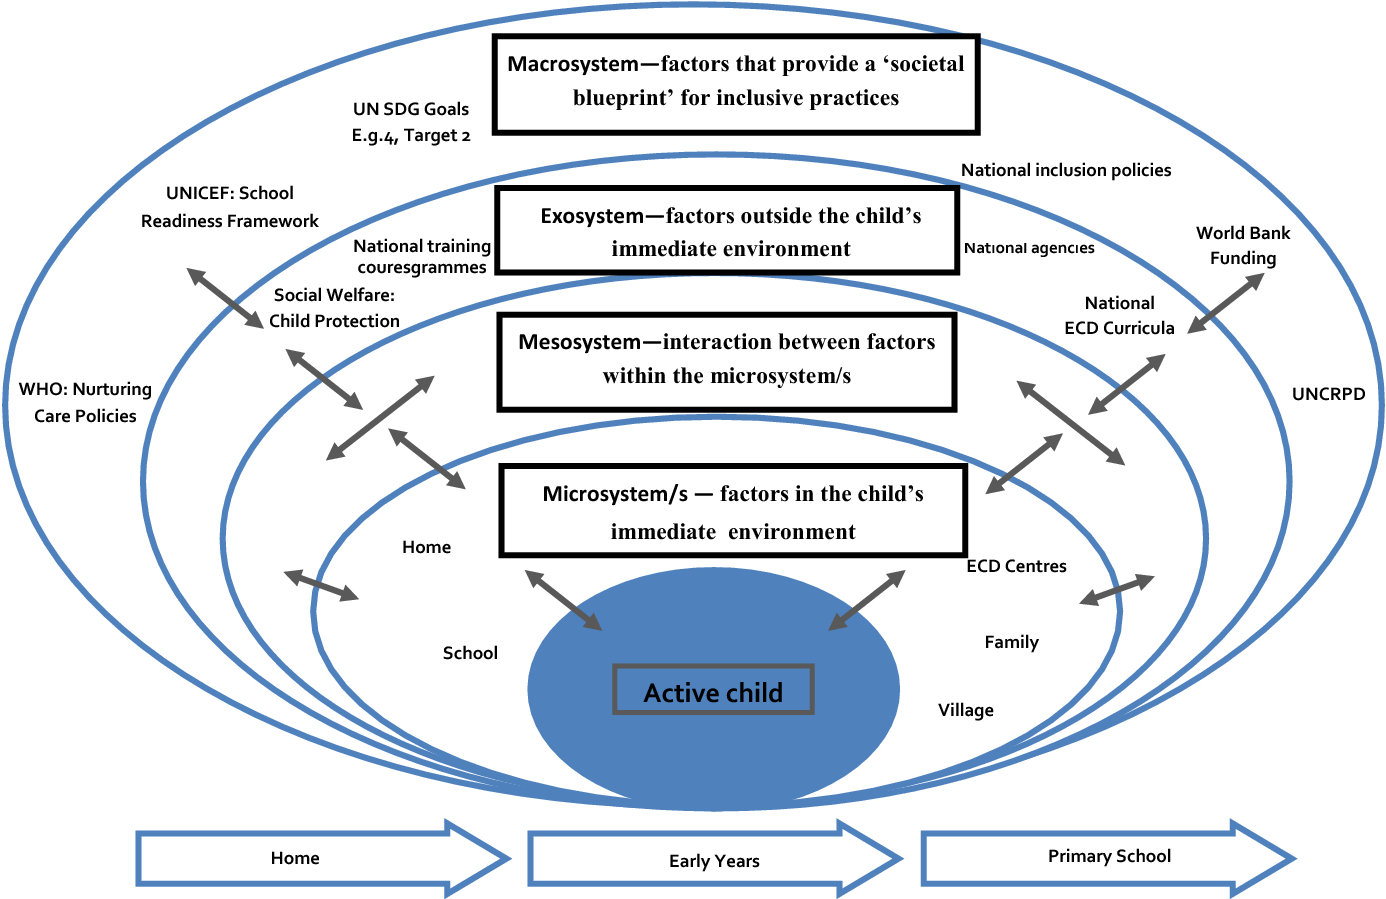 Supporting children with disabilities in low and middle income fig 1 a bioecological model of inclusive early childhood development malvernweather Images